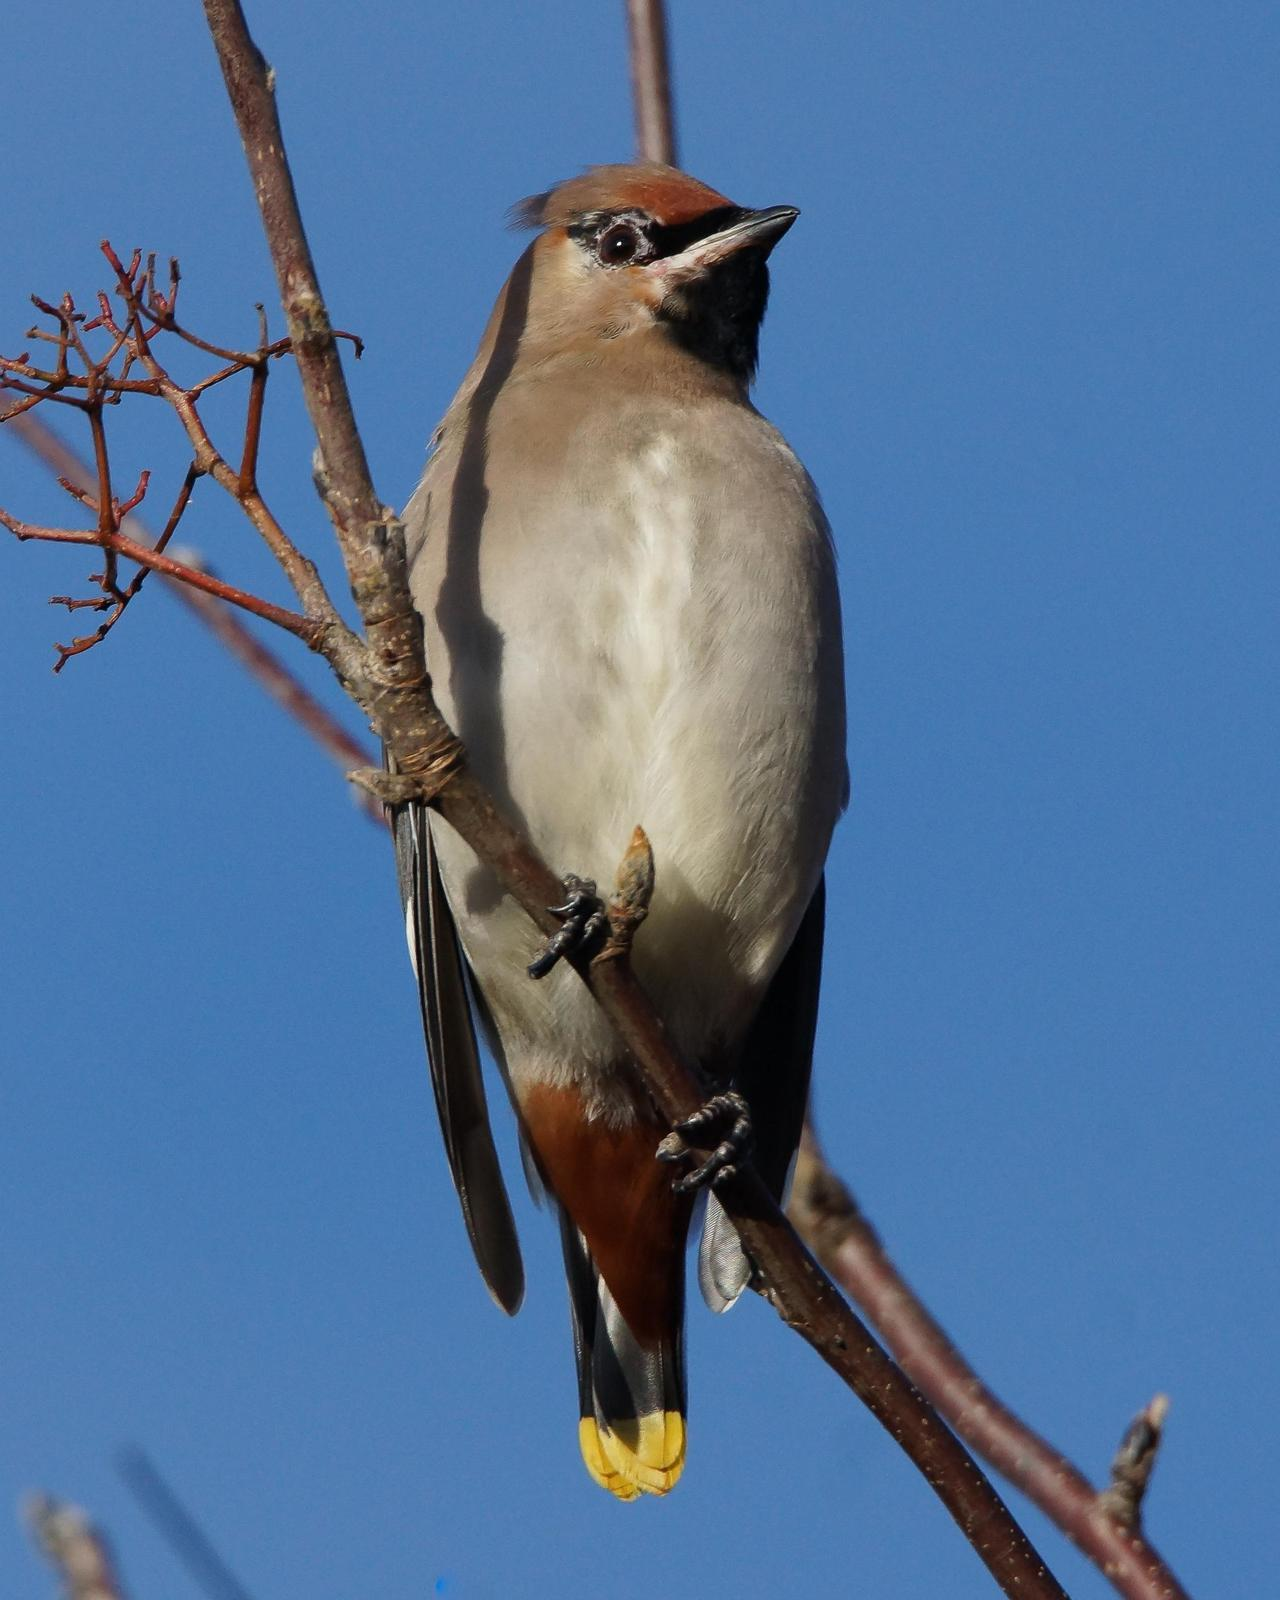 Bohemian Waxwing Photo by Steve Percival